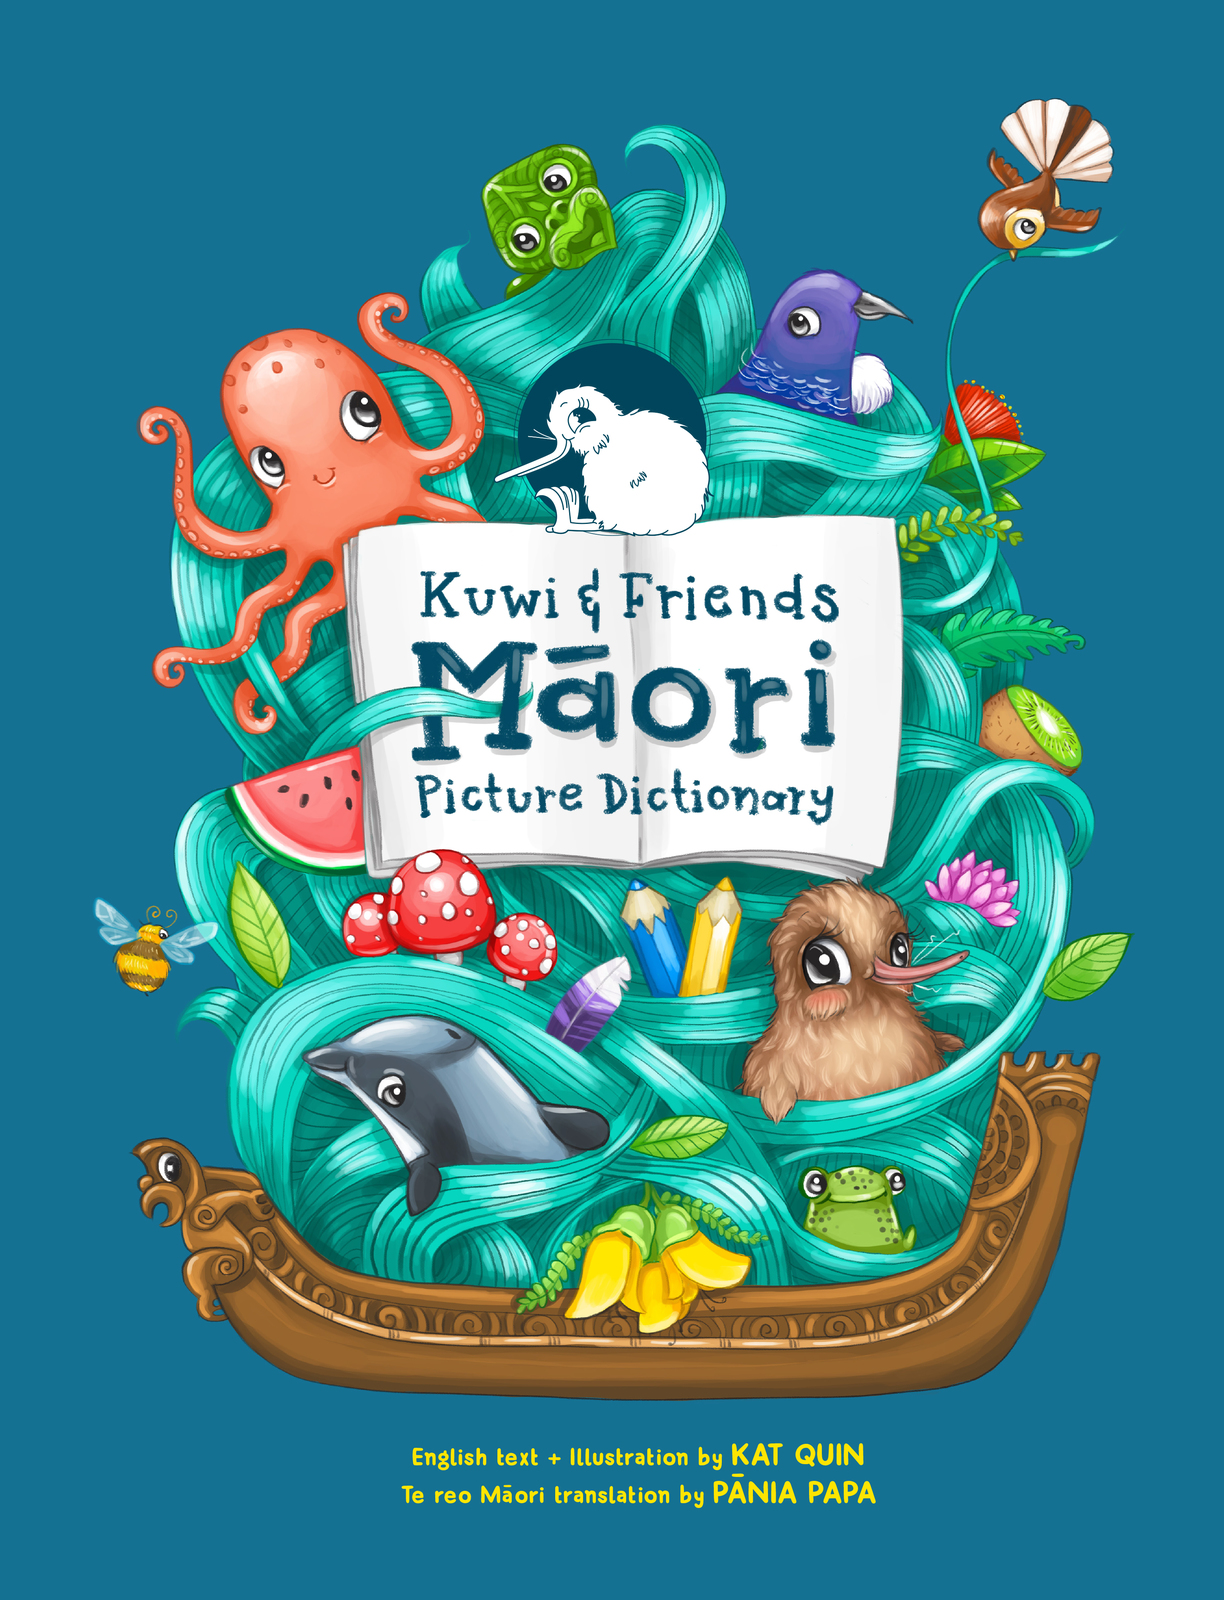 Kuwi & Friends Māori Picture Dictionary image